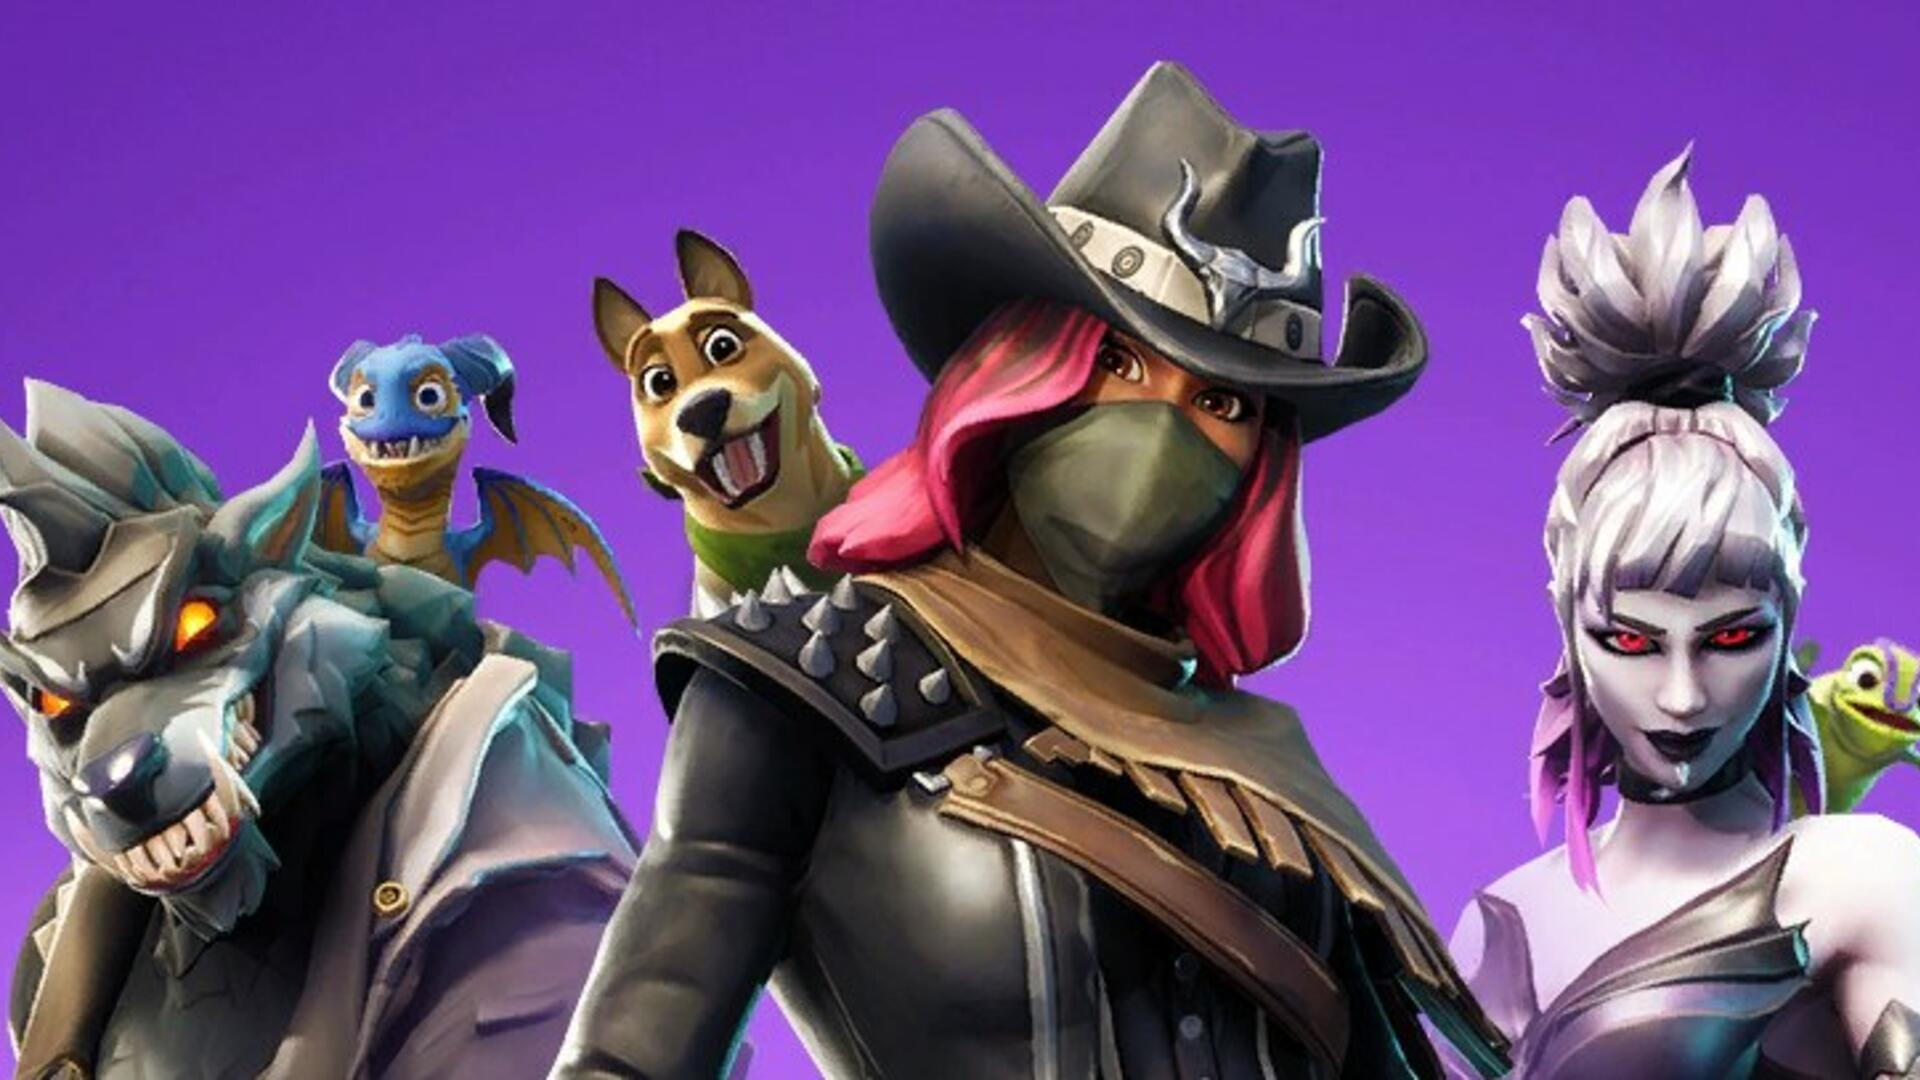 """Epic to Remove """"Embarrassing"""" Boob Physics from Fortnite, Says It's a Bug"""